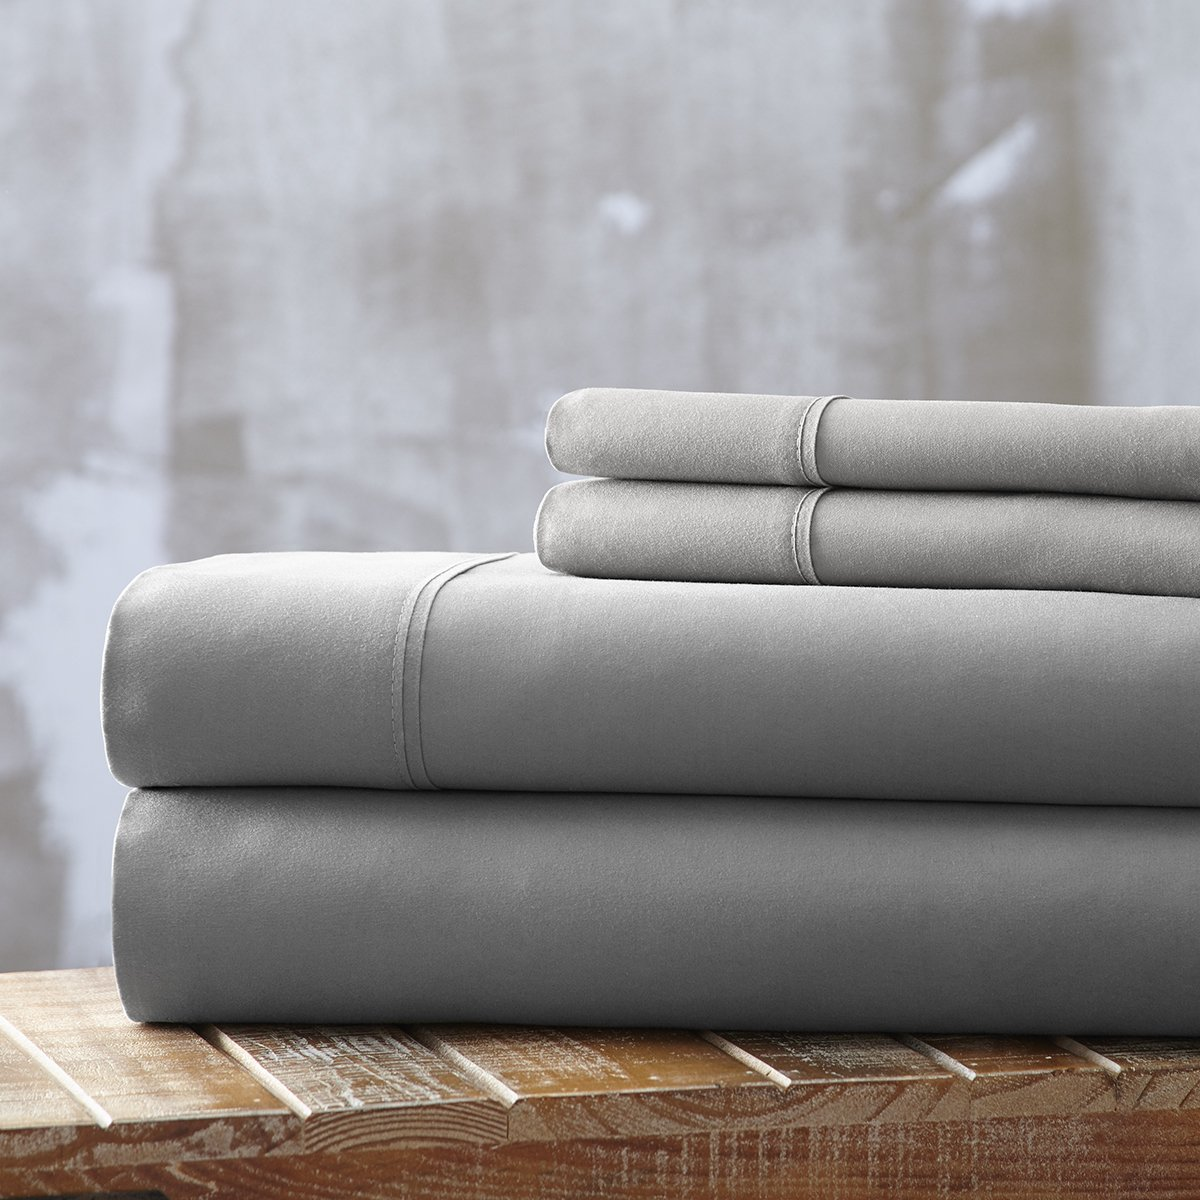 Spirit Linen, Inc Hotel 5th Ave EE-QUEEN-GREY-4PC Queen Grey Everyday Essentials 1800 Series 4Pc Sheet Set